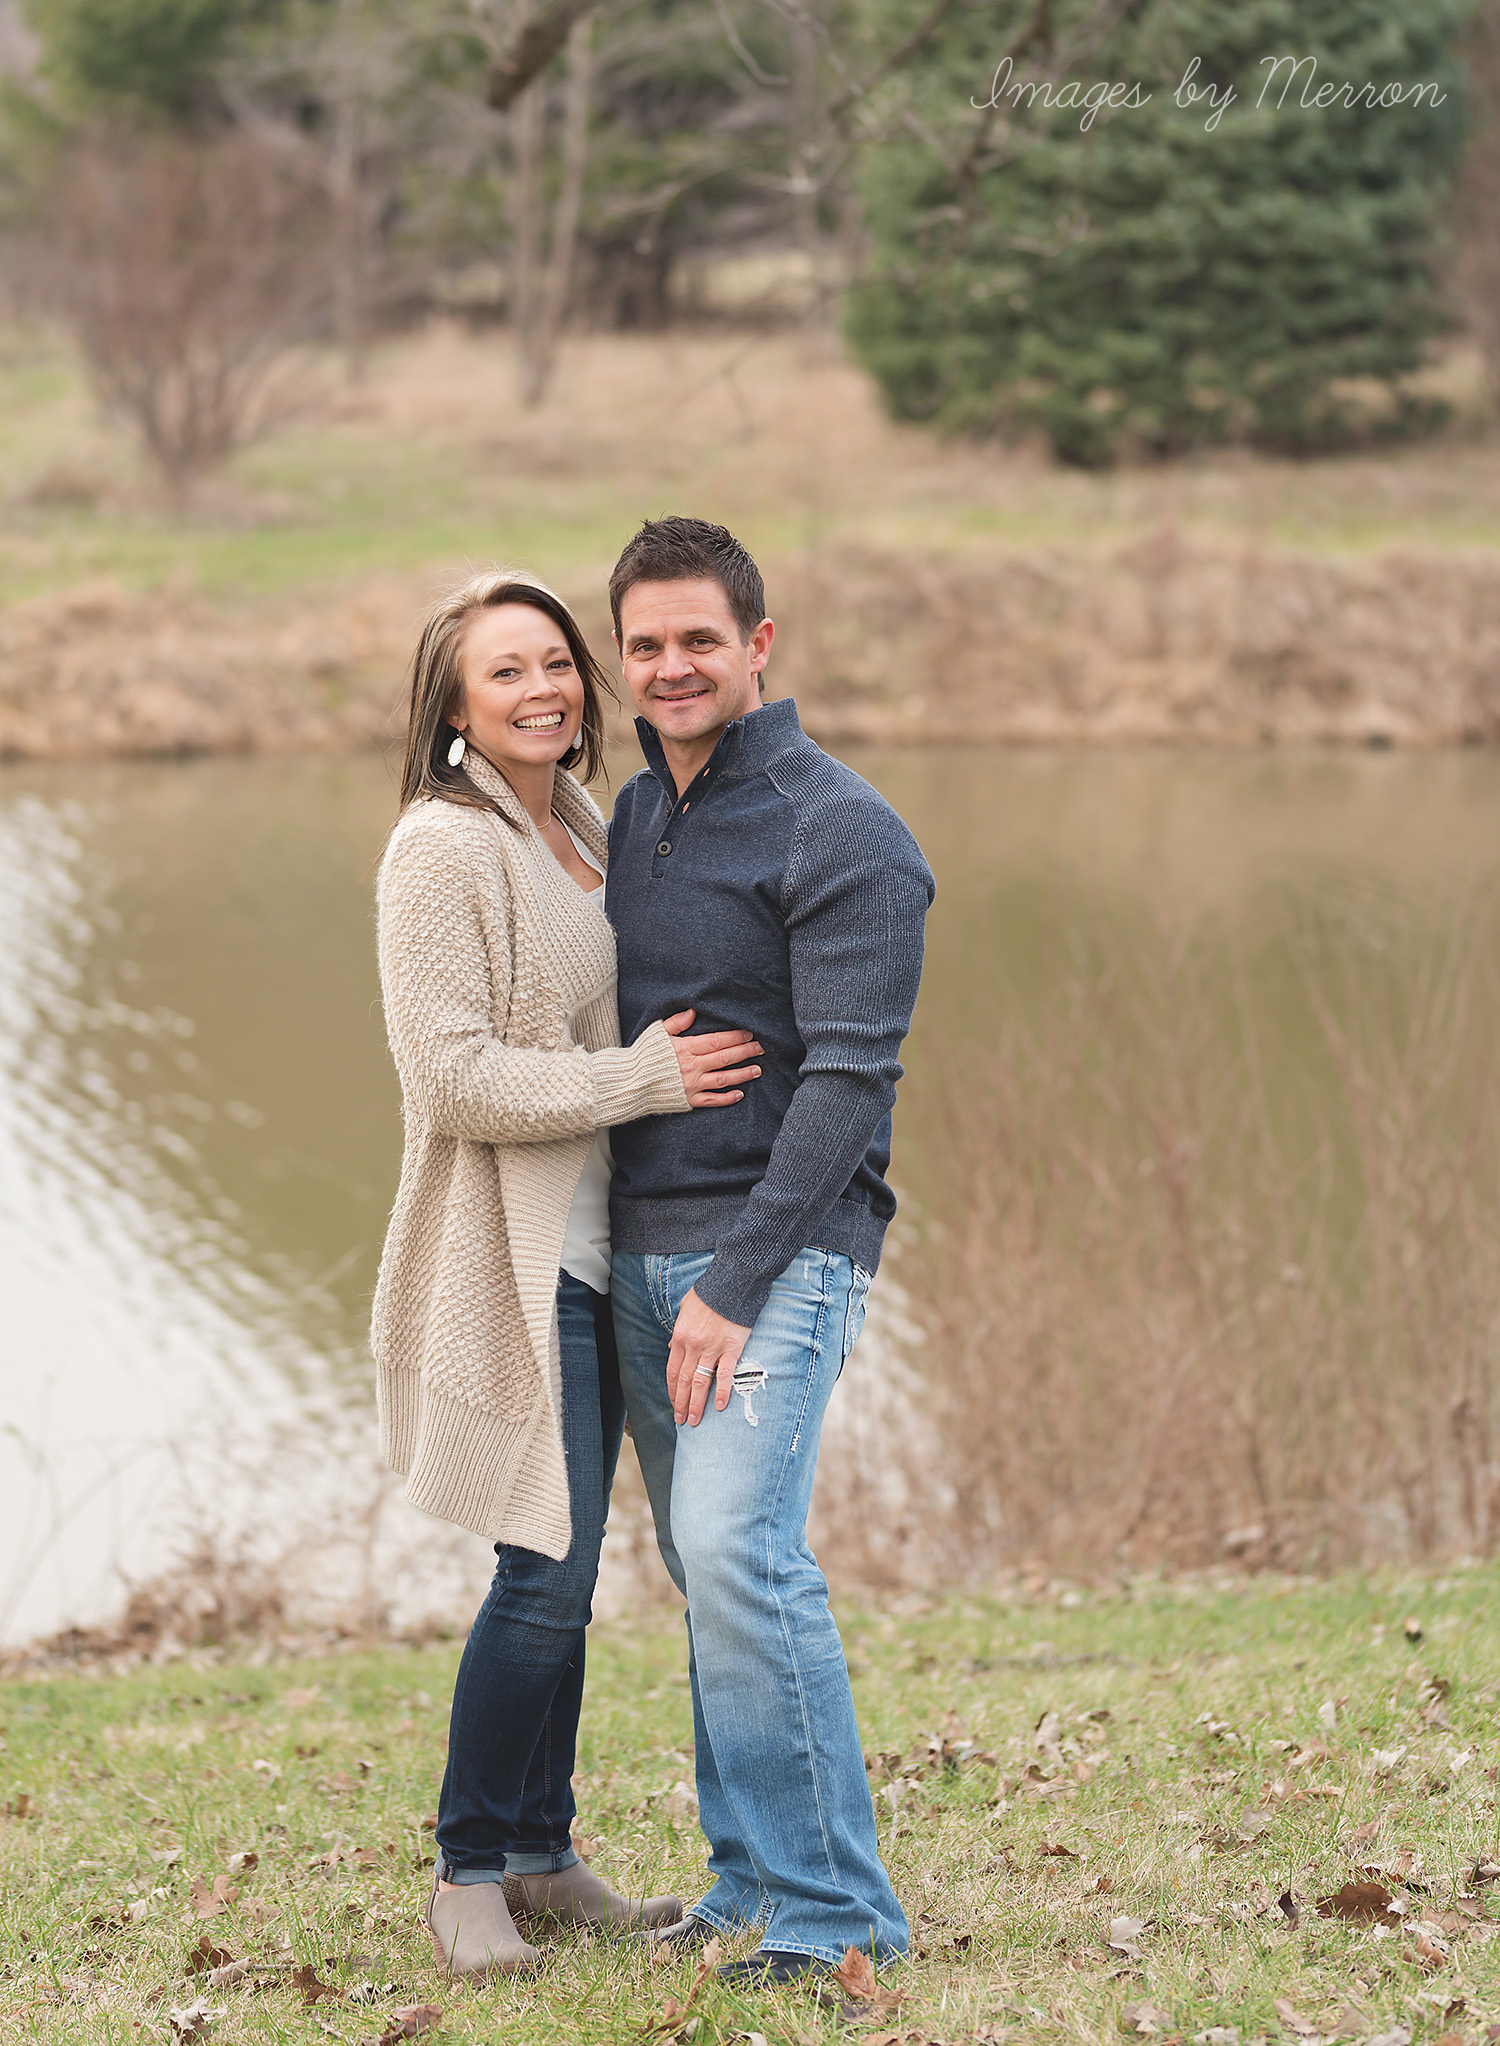 Couples Photography in Des Moines, Iowa